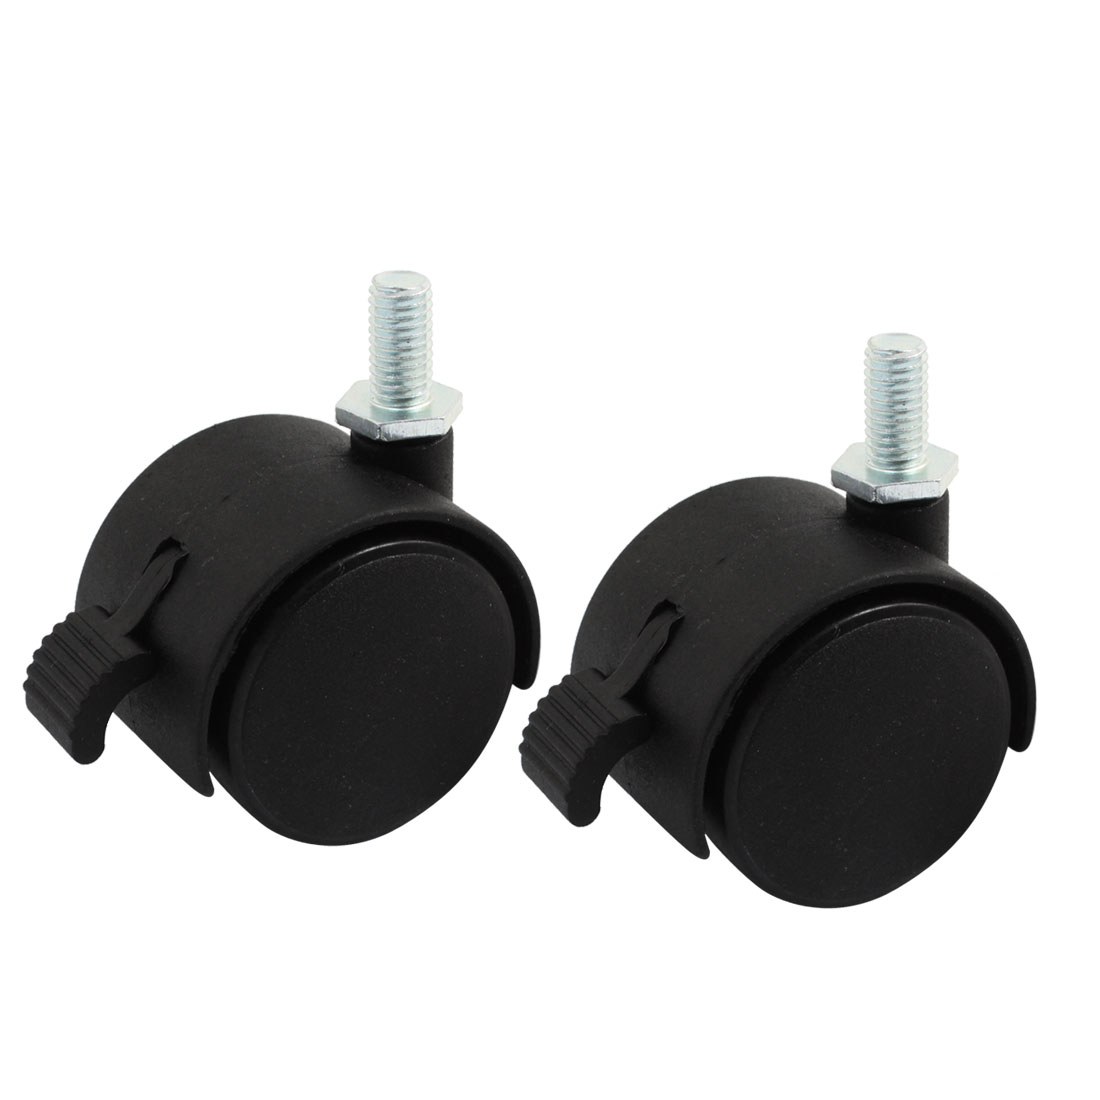 "Luggage Case Carts 8mm Thread Dia 1.5"" Round Rotary Brake Swivel Wheel Caster Black 2pcs"